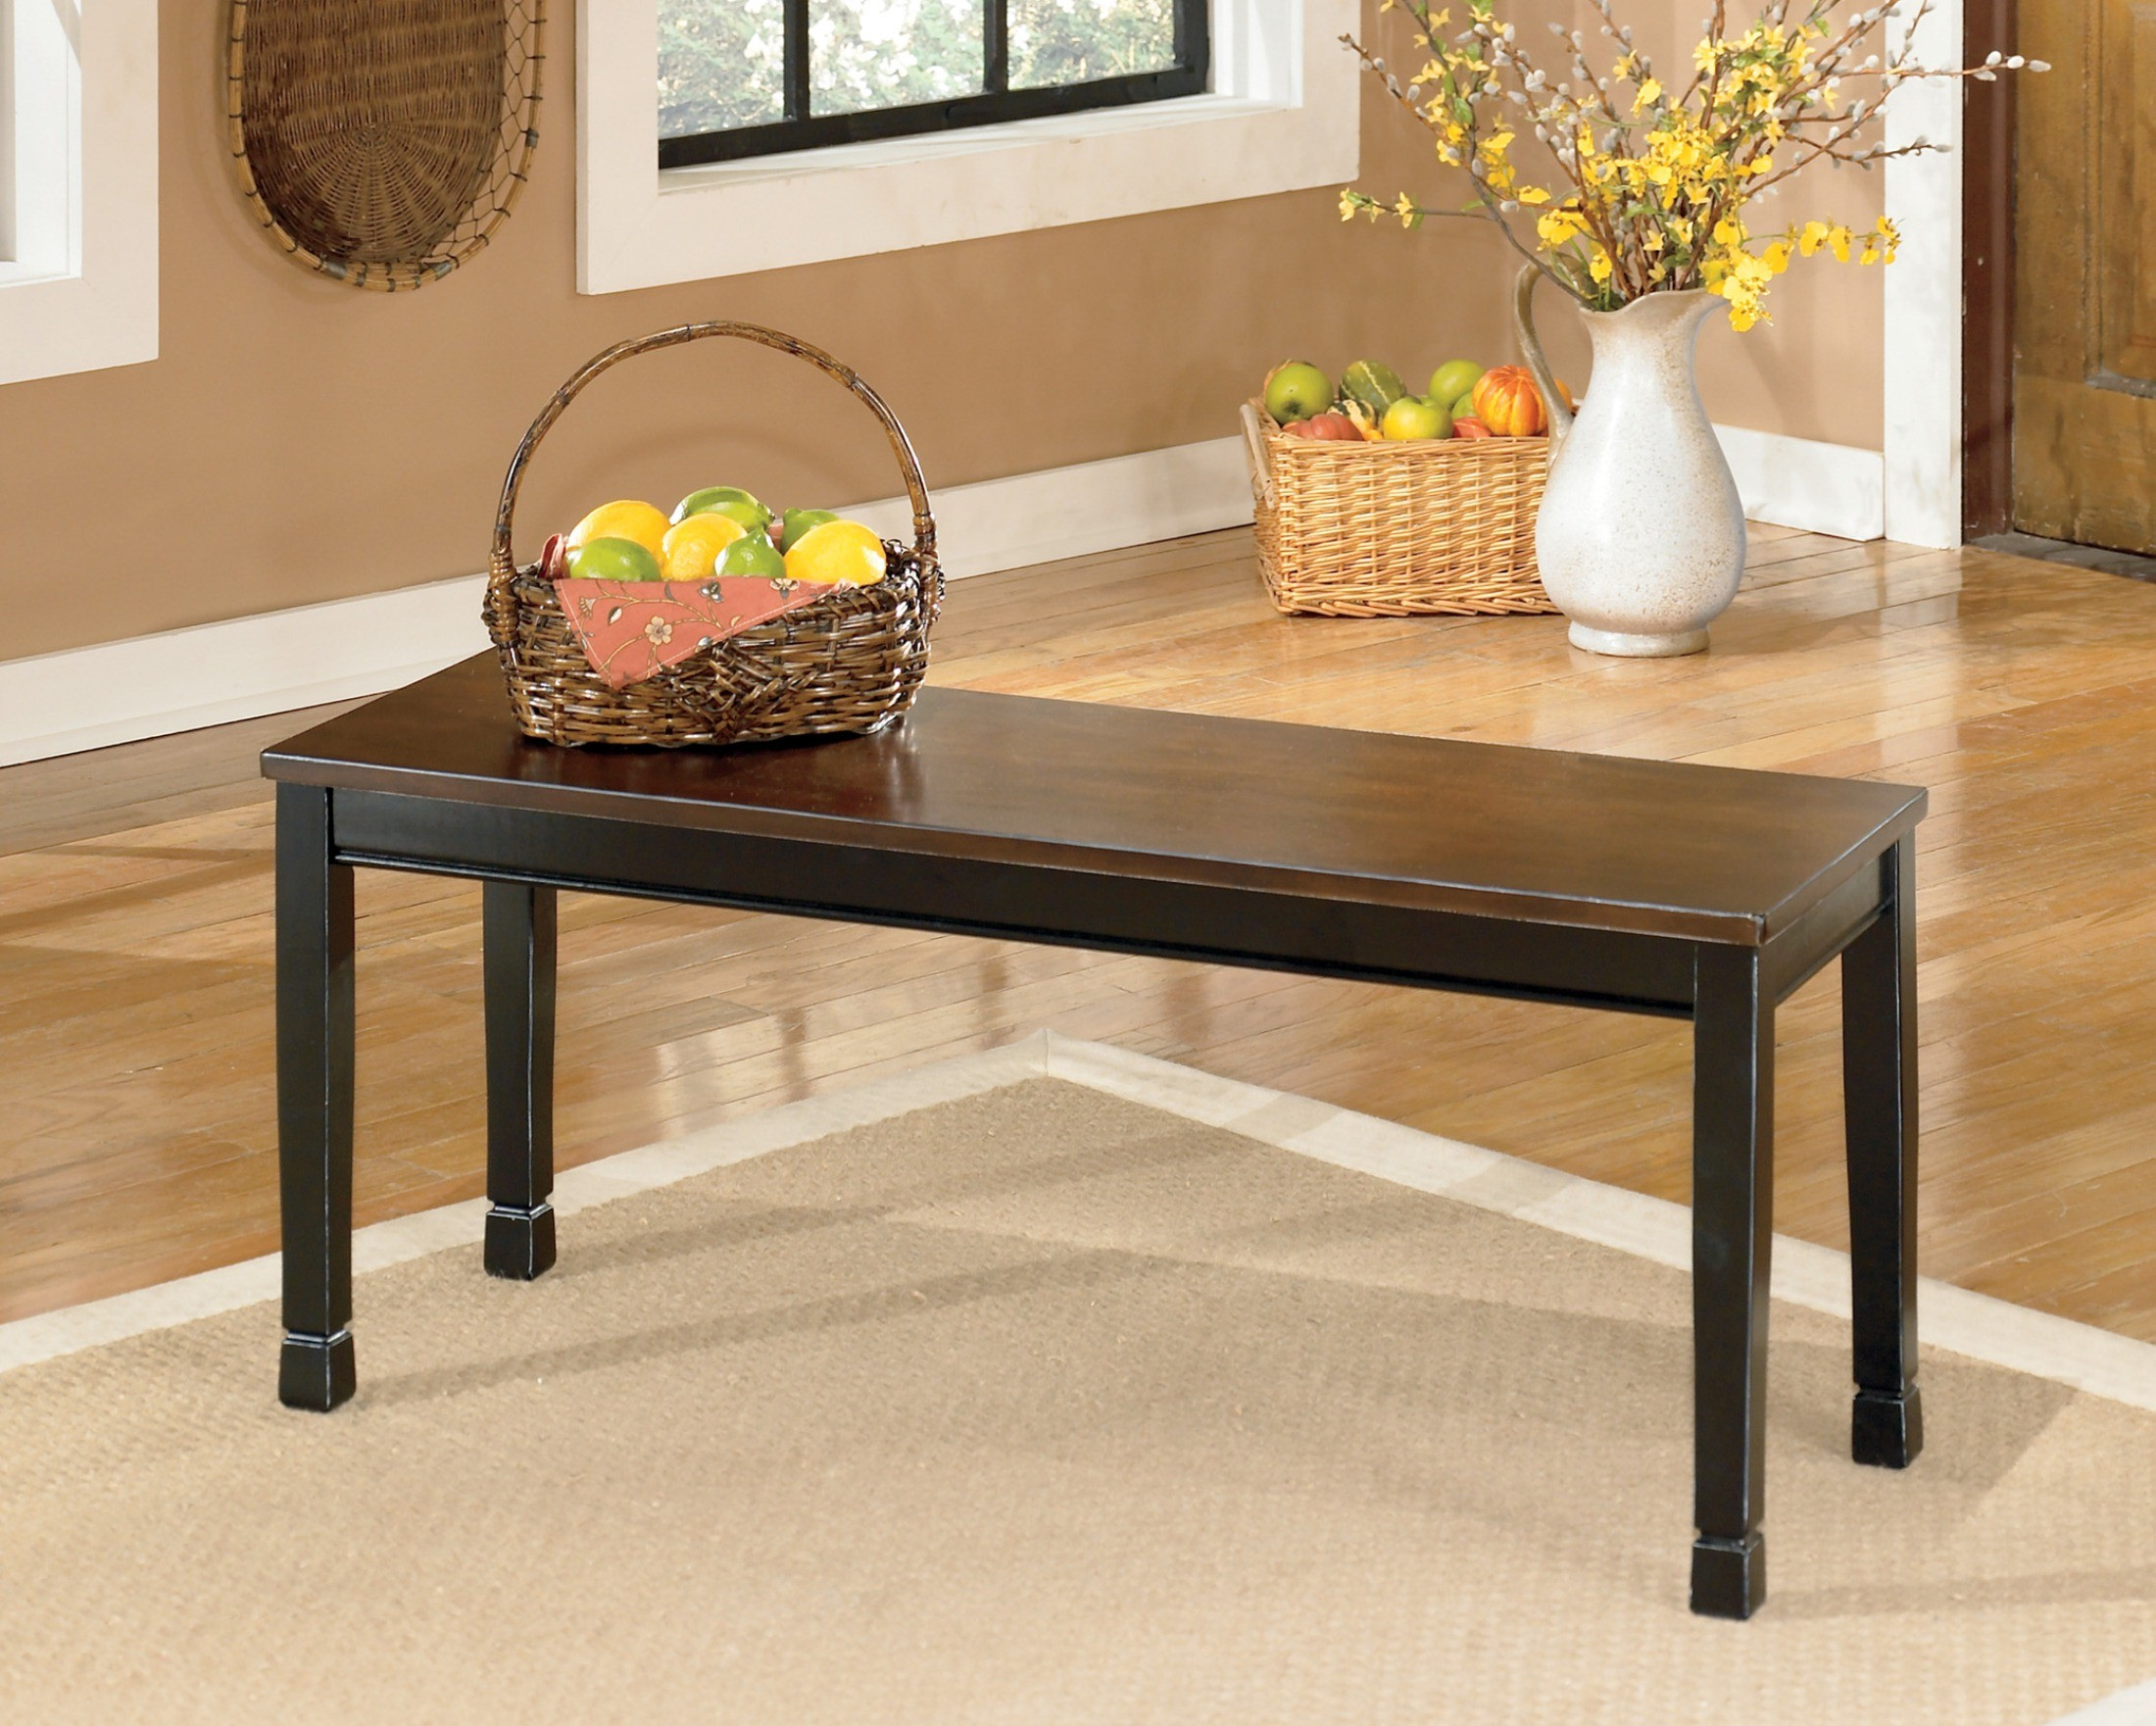 Owingsville Large Dining Room Bench From Ashley D580 00 Coleman Furniture